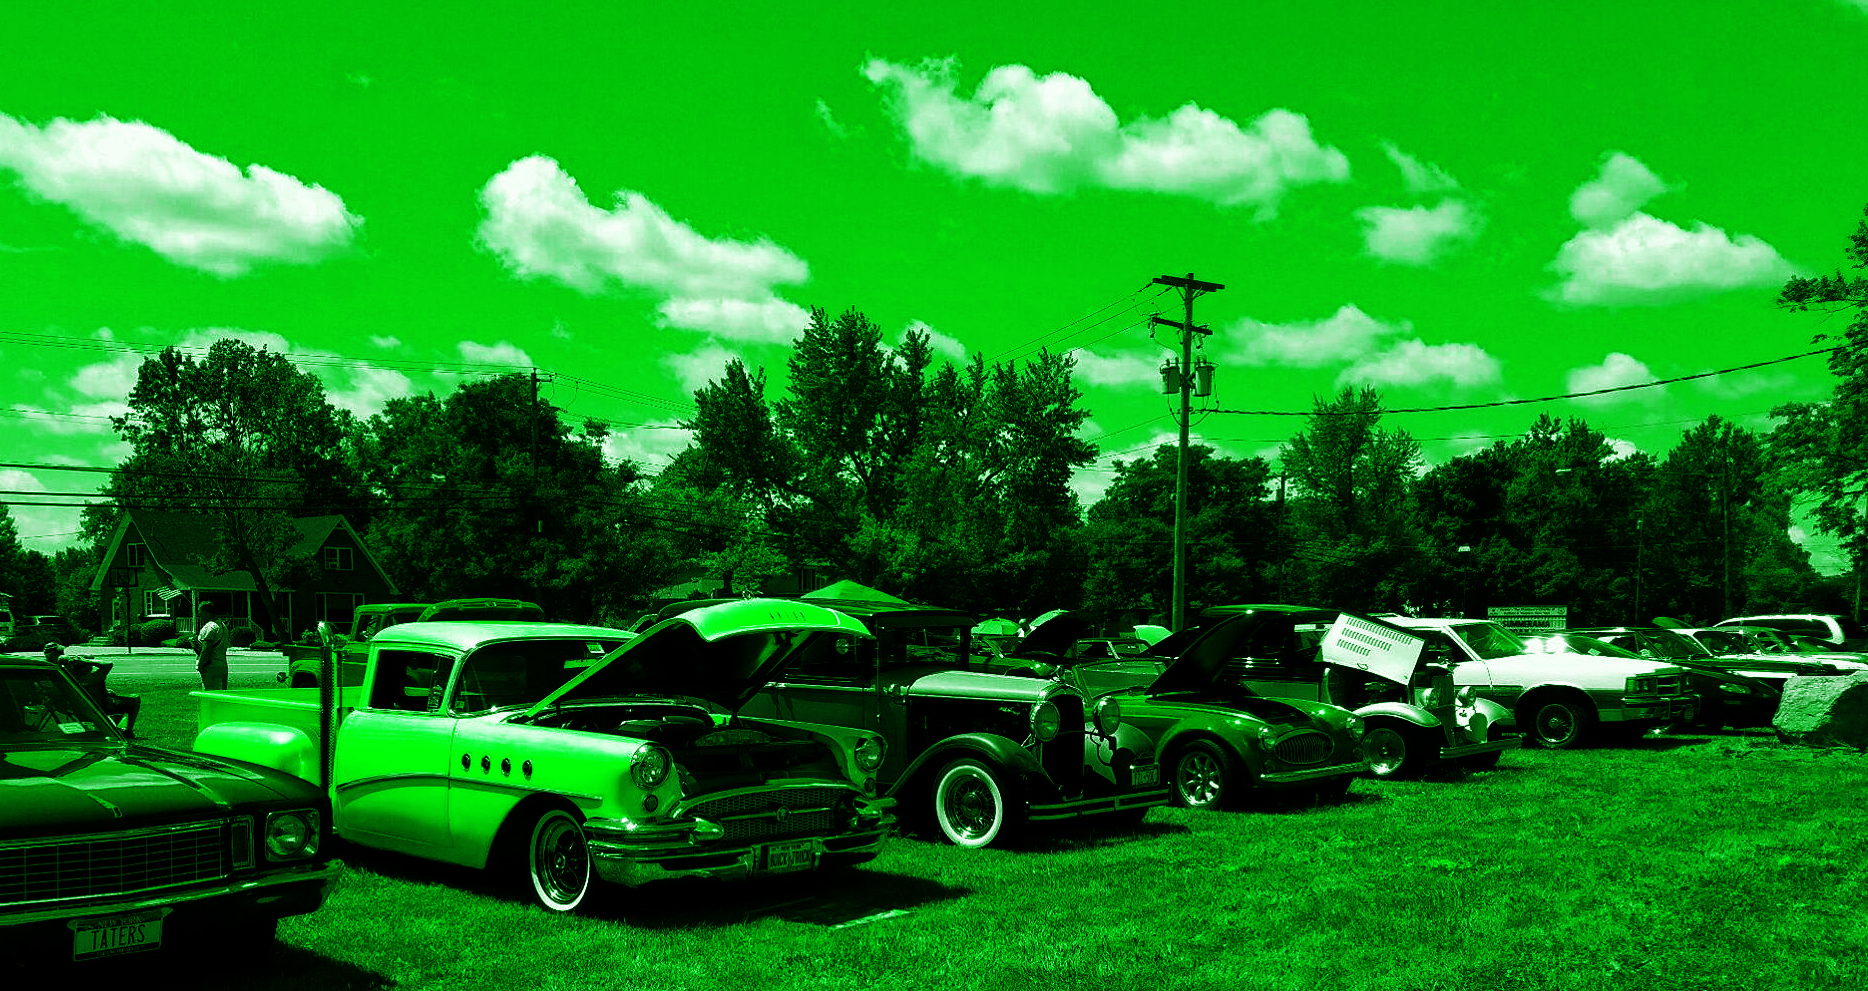 Cars parked on green grass at a car show with clear sky and clouds